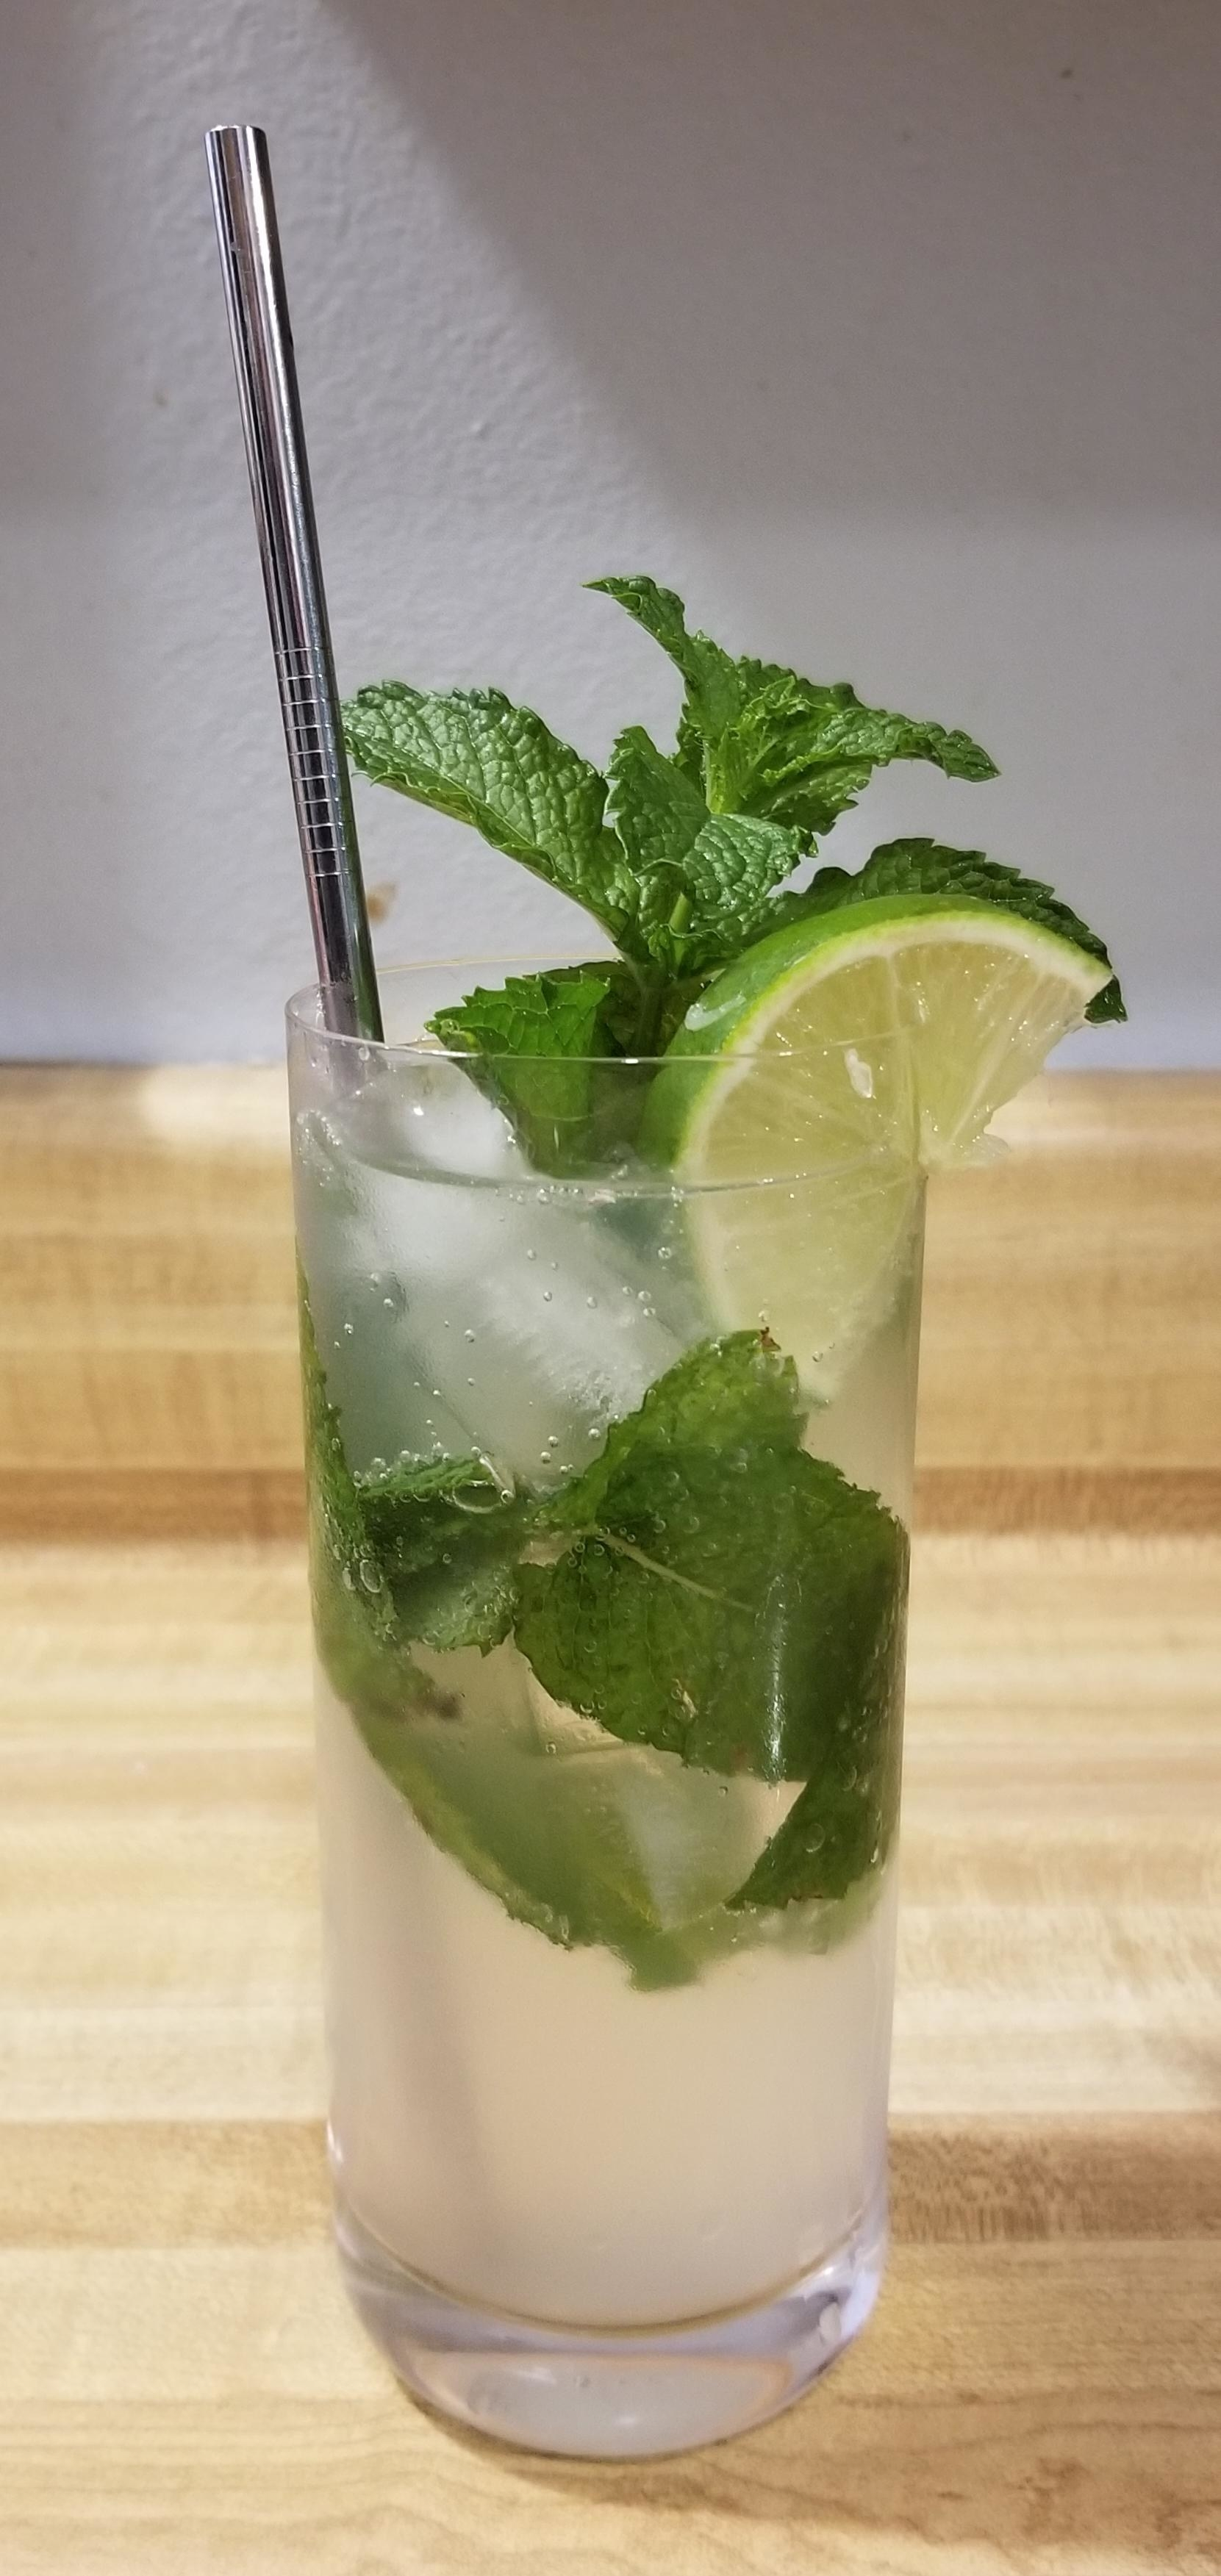 A non-alcoholic mojito garnished with mint and lime.